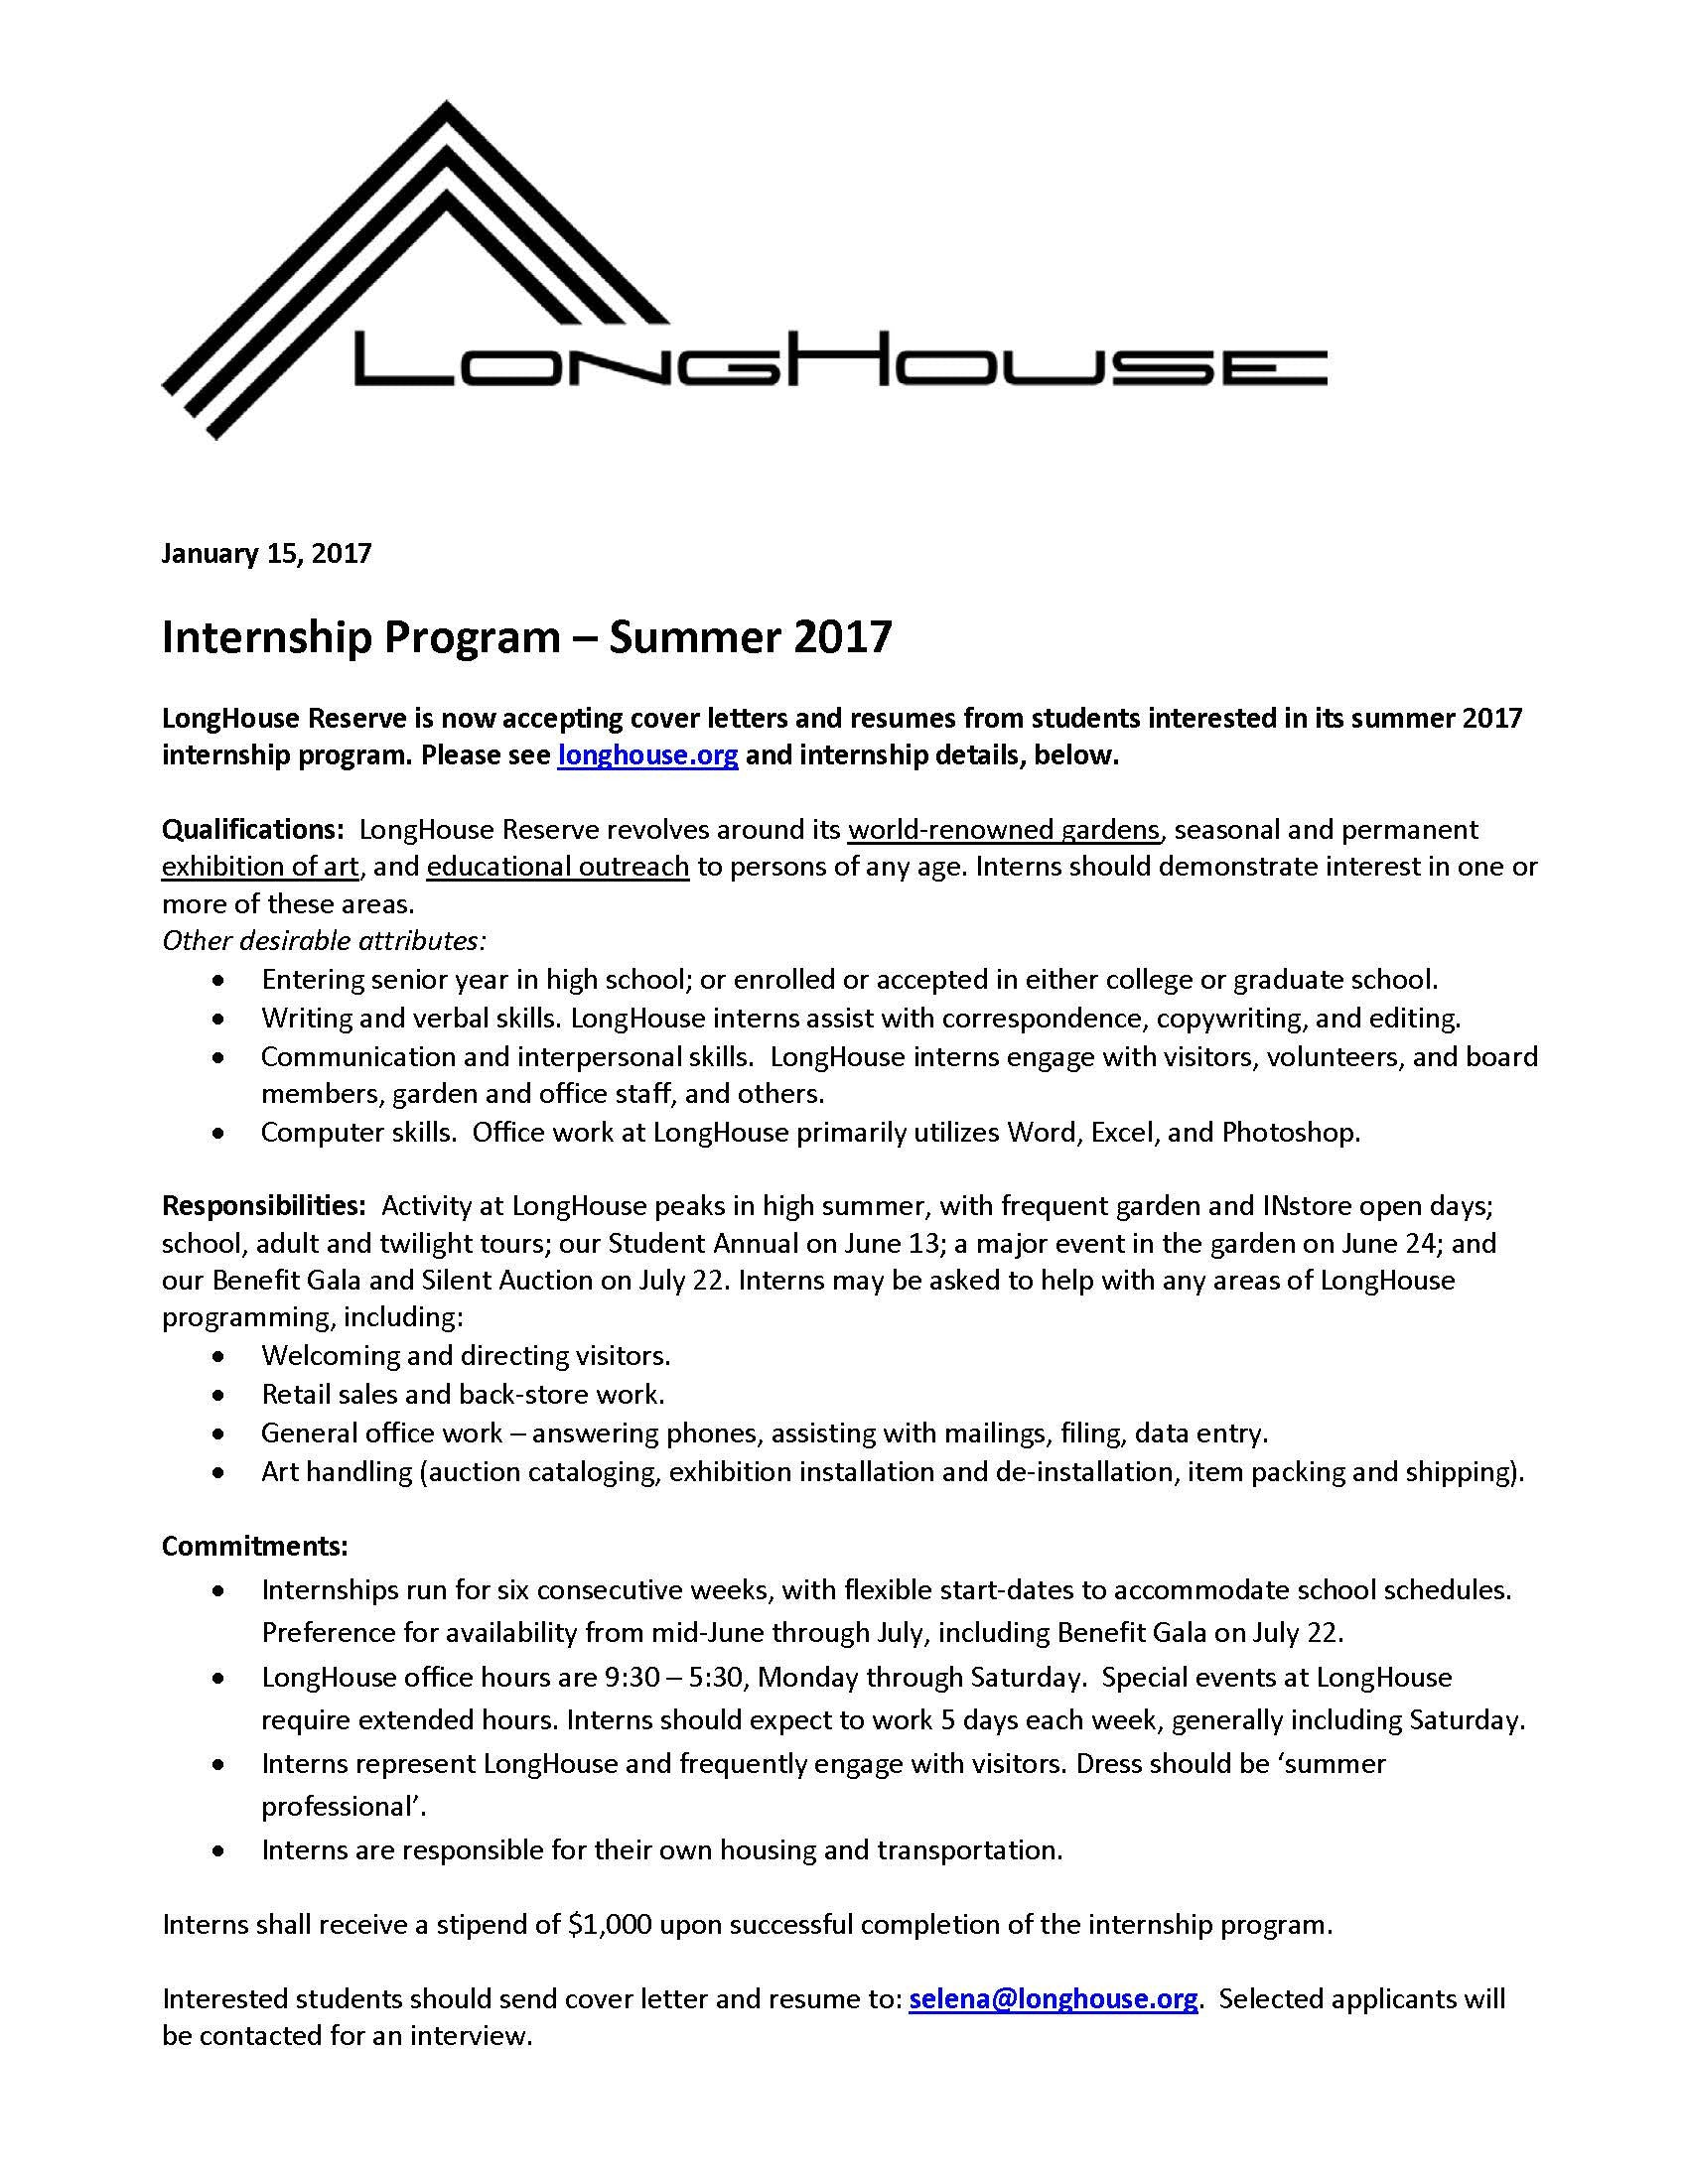 Summer internships longhouse reserve longhouse reserve is now accepting cover letters and resumes from students interested in its summer 2017 internship program madrichimfo Image collections